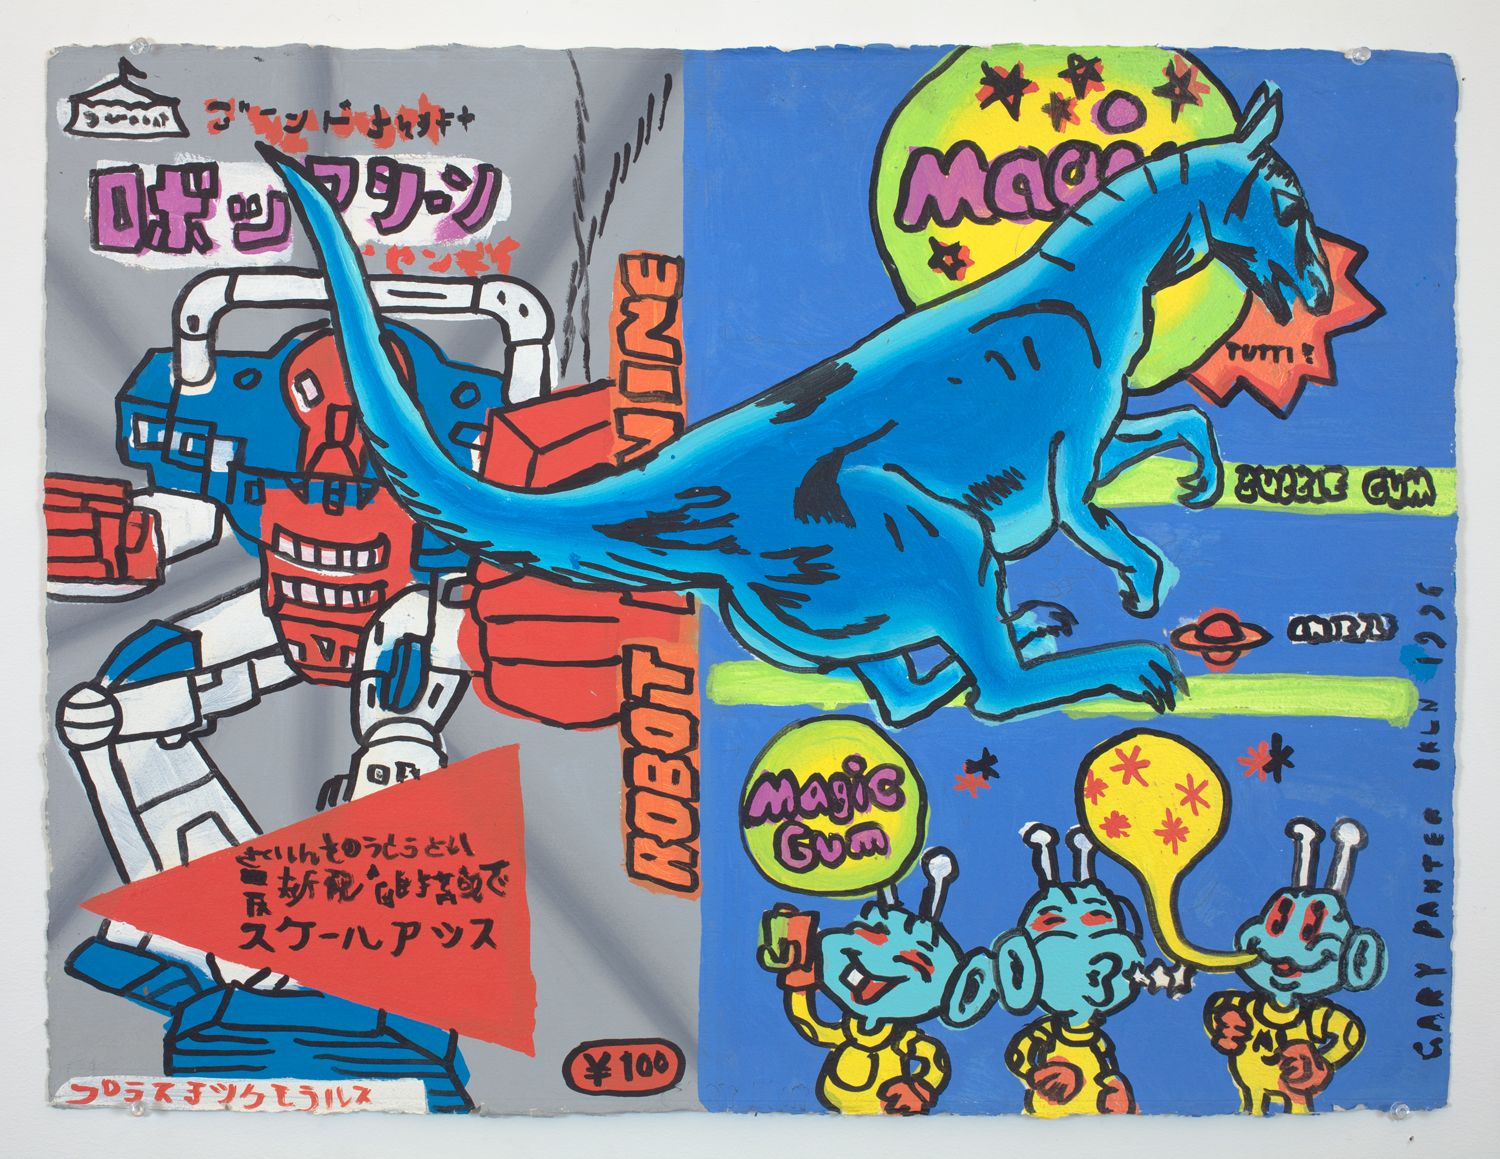 GARY PANTER, Untitled (Robot), 1996